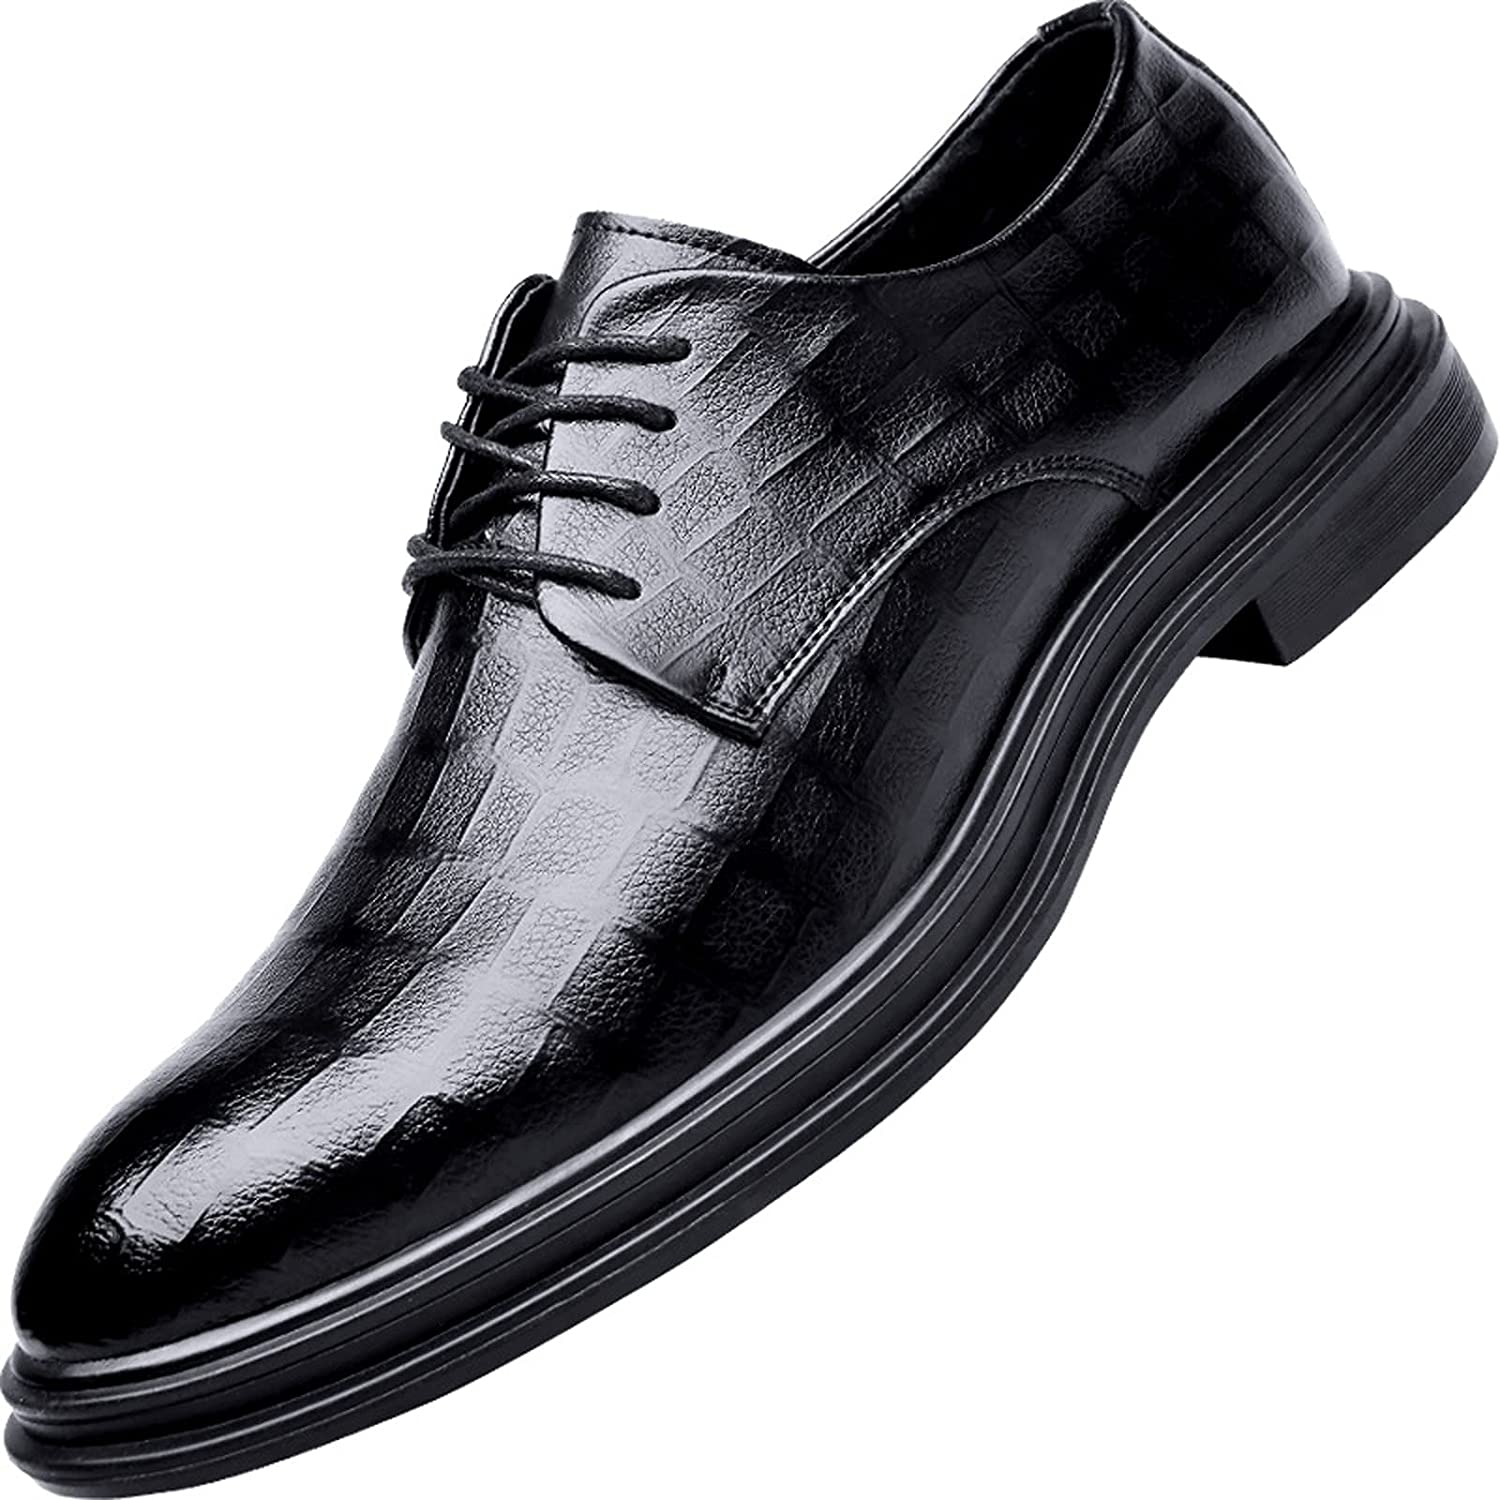 juyouqian Oxford Shoes Breathable Comfy Mens Italy Shoes Casual Party Shoes for Men Black